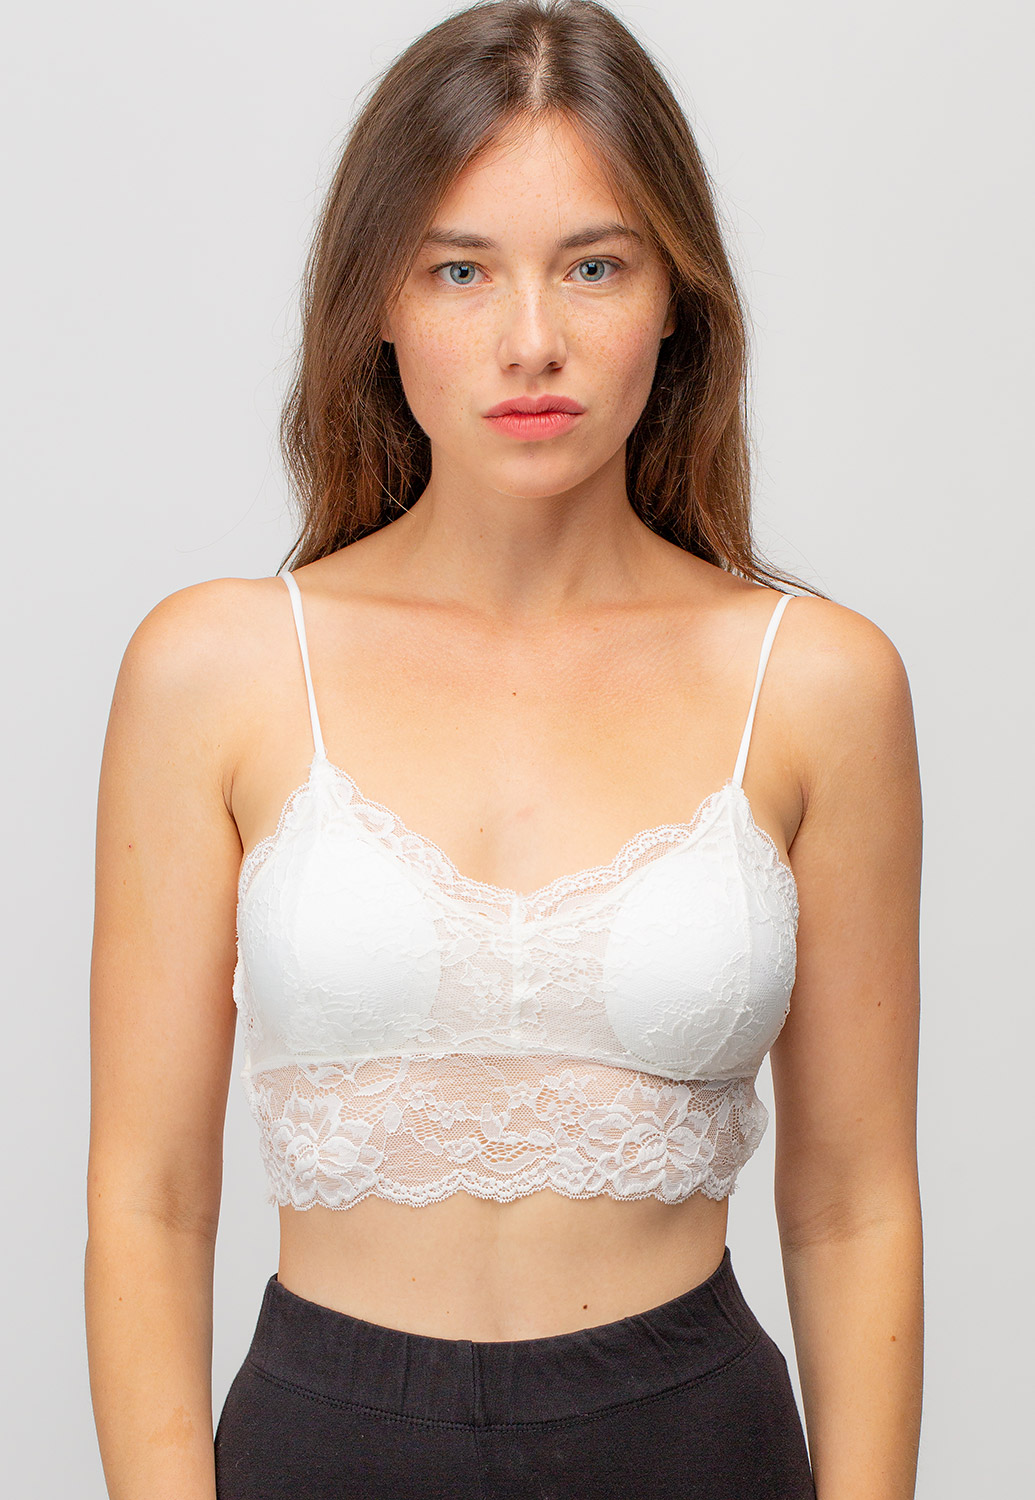 Floral Lace Strappy Bralettes With Cross Back